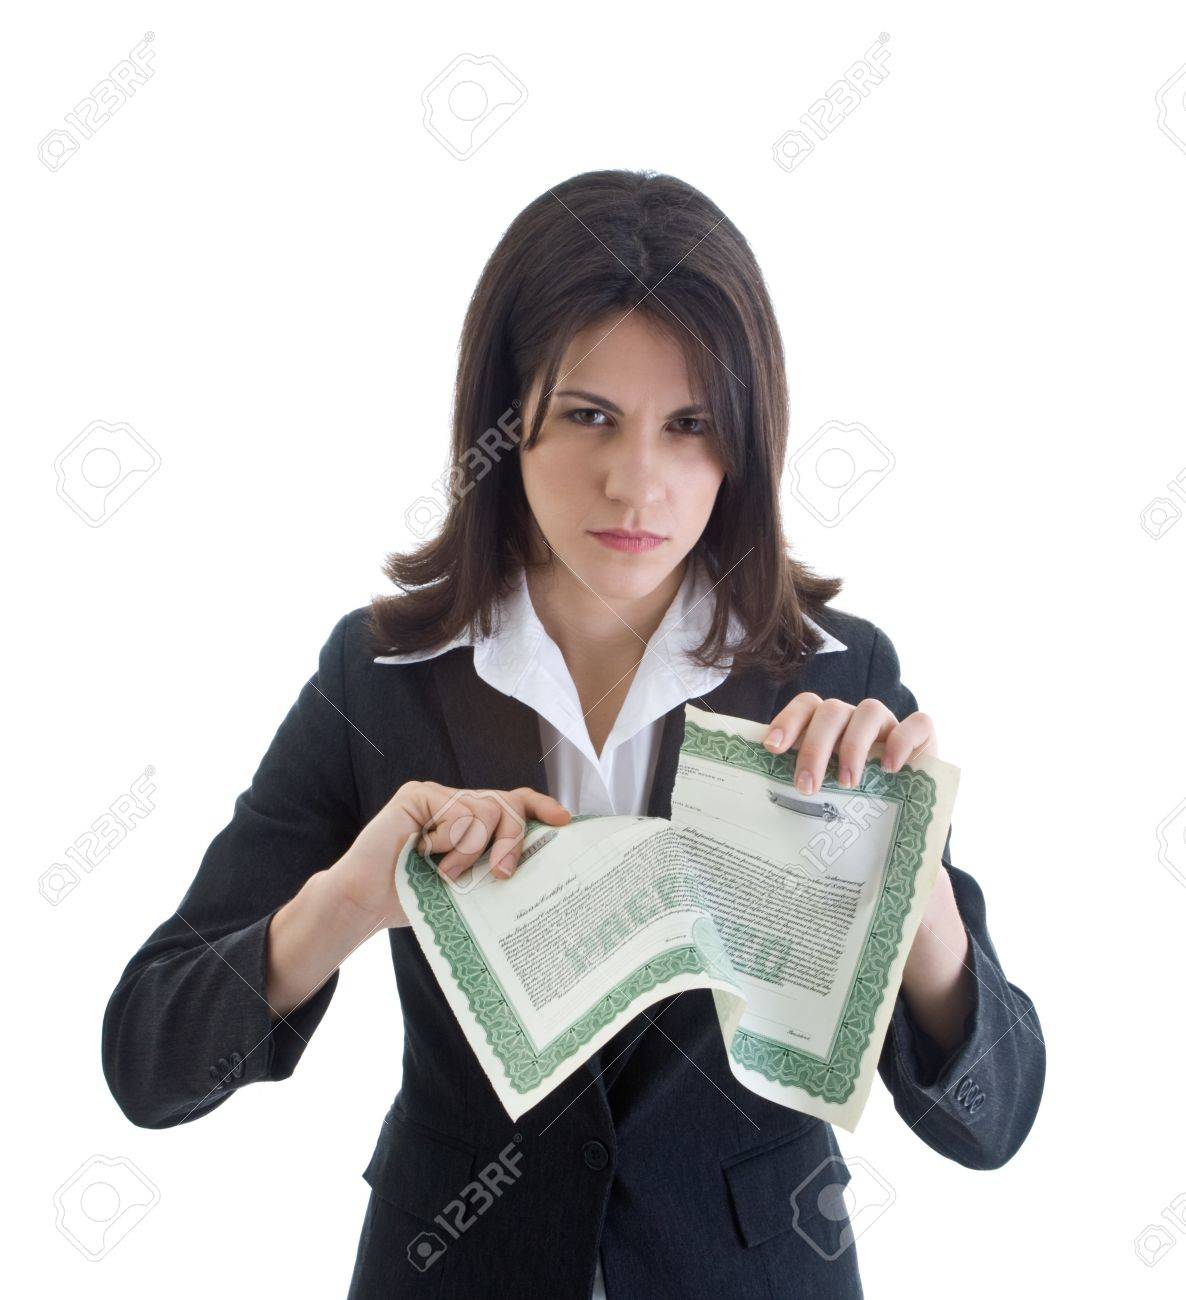 Angry Caucasian woman glaring at the camera while ripping up a stock certificate.  Isolated on white. Stock Photo - 11397268